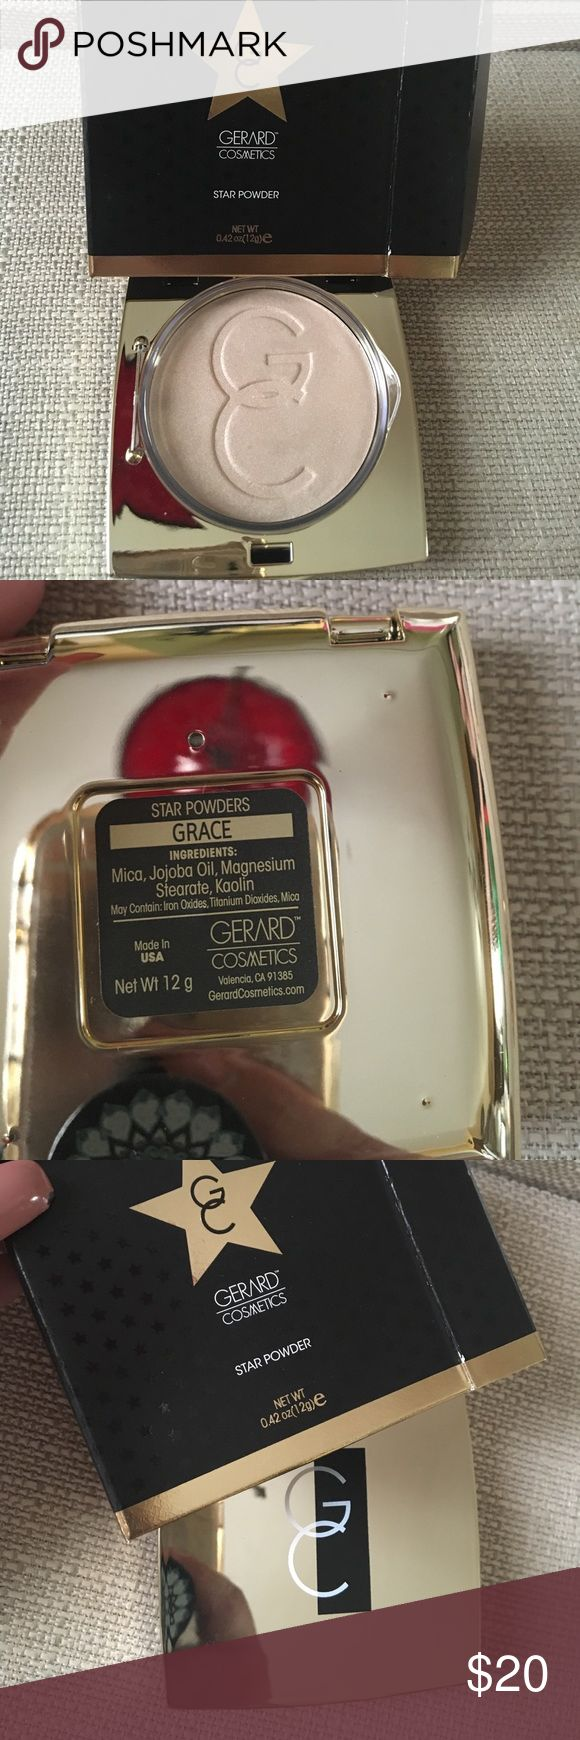 Gerard Cosmetics star powder Grace Gerard Cosmetics star powder in Grace, item is brand new in box and it will be shipped to you same day. gerard cosmetics Makeup Luminizer